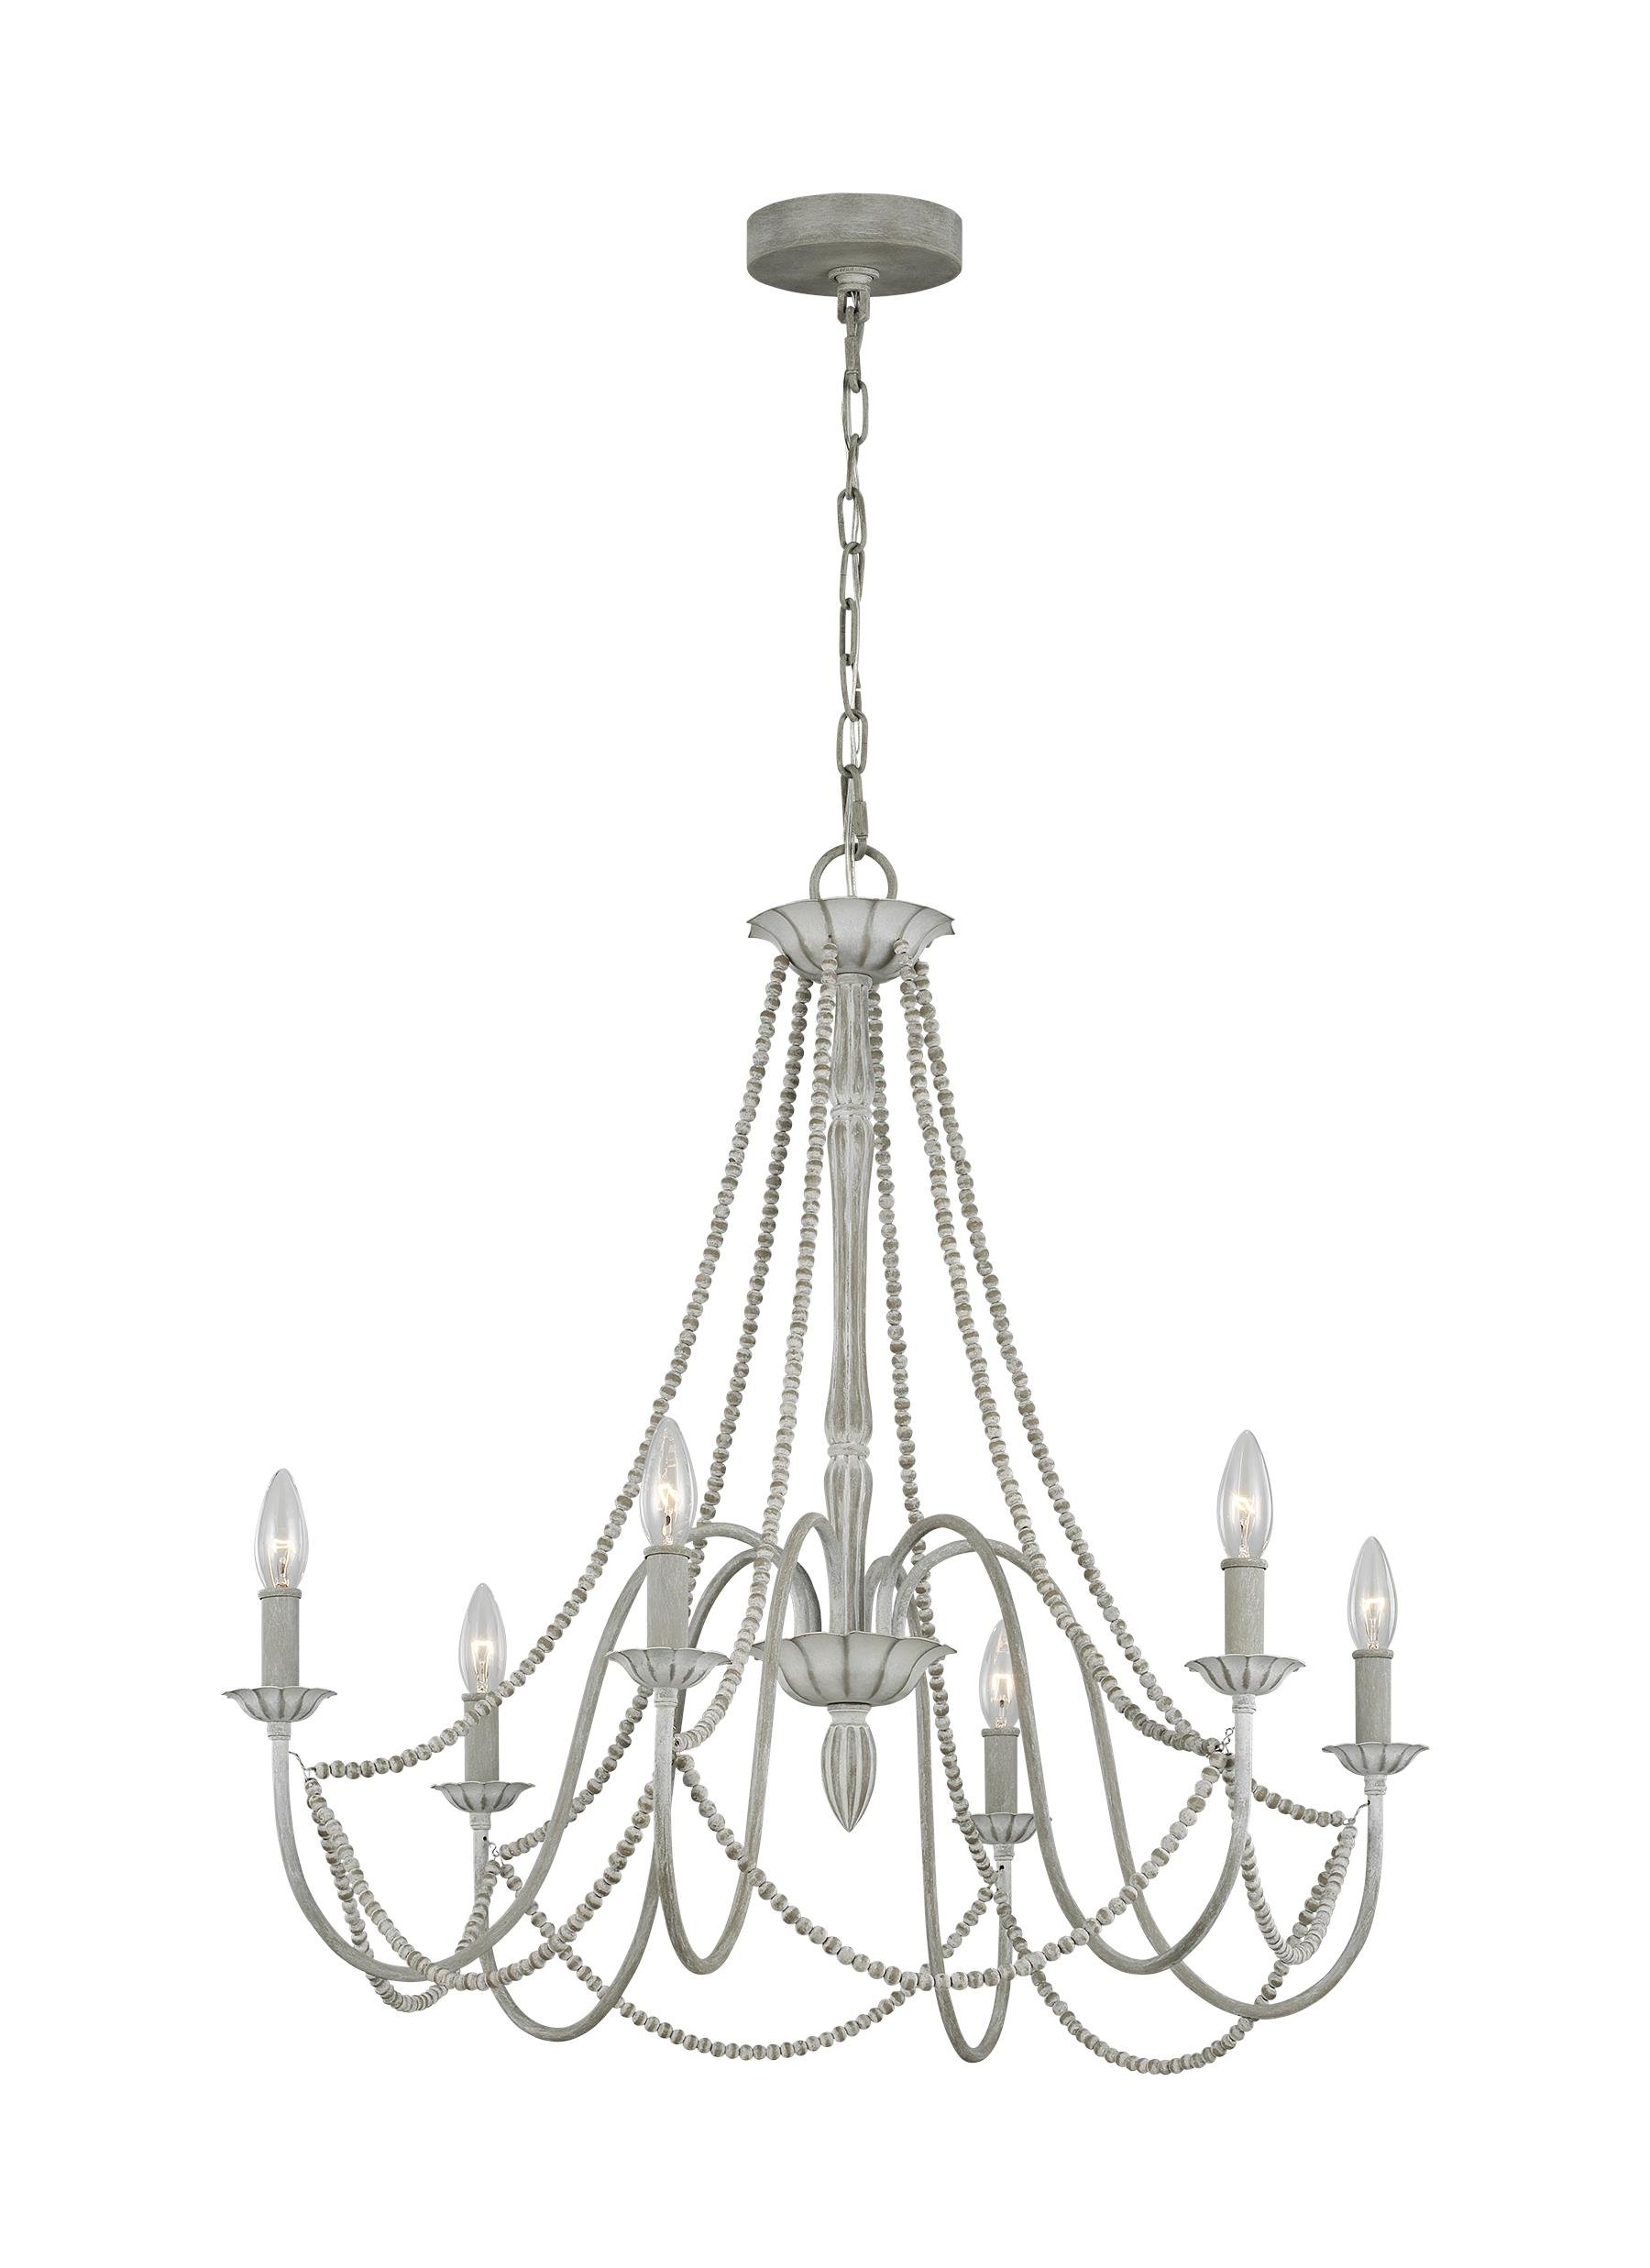 Most Popular Caufield 6 Light Candle Style Chandelier Regarding Diaz 6 Light Candle Style Chandeliers (View 7 of 20)